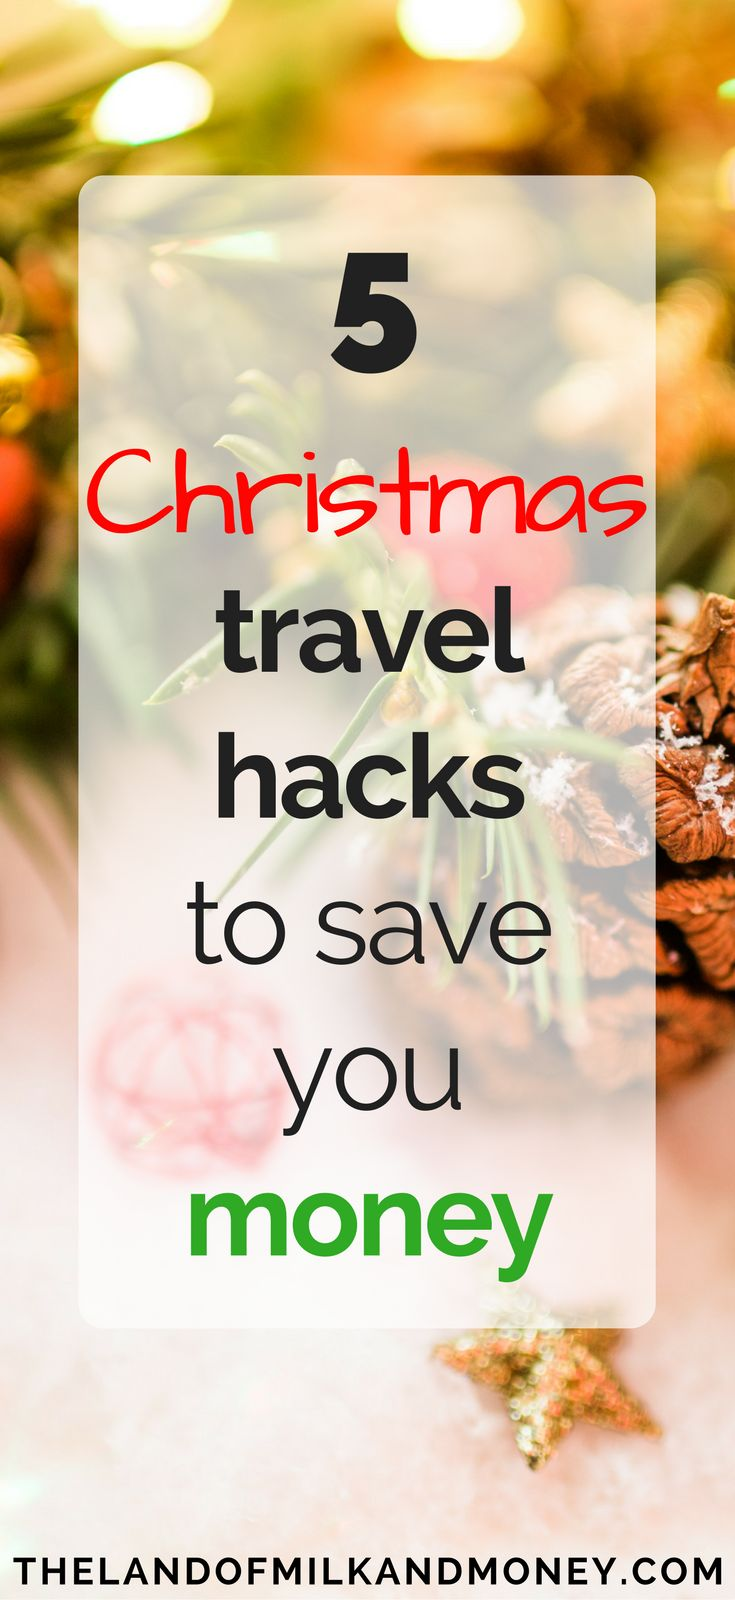 These cheap Christmas travel ideas are great money saving tips for the holidays. Trying to do Christmas on a budget can be super hard but seeing how to do a frugal Christmas with things like this is amazing to help me save money and embrace frugal living, even when trying to get to my dream destinations these holidays! #christmas #holidays #frugal #savemoney